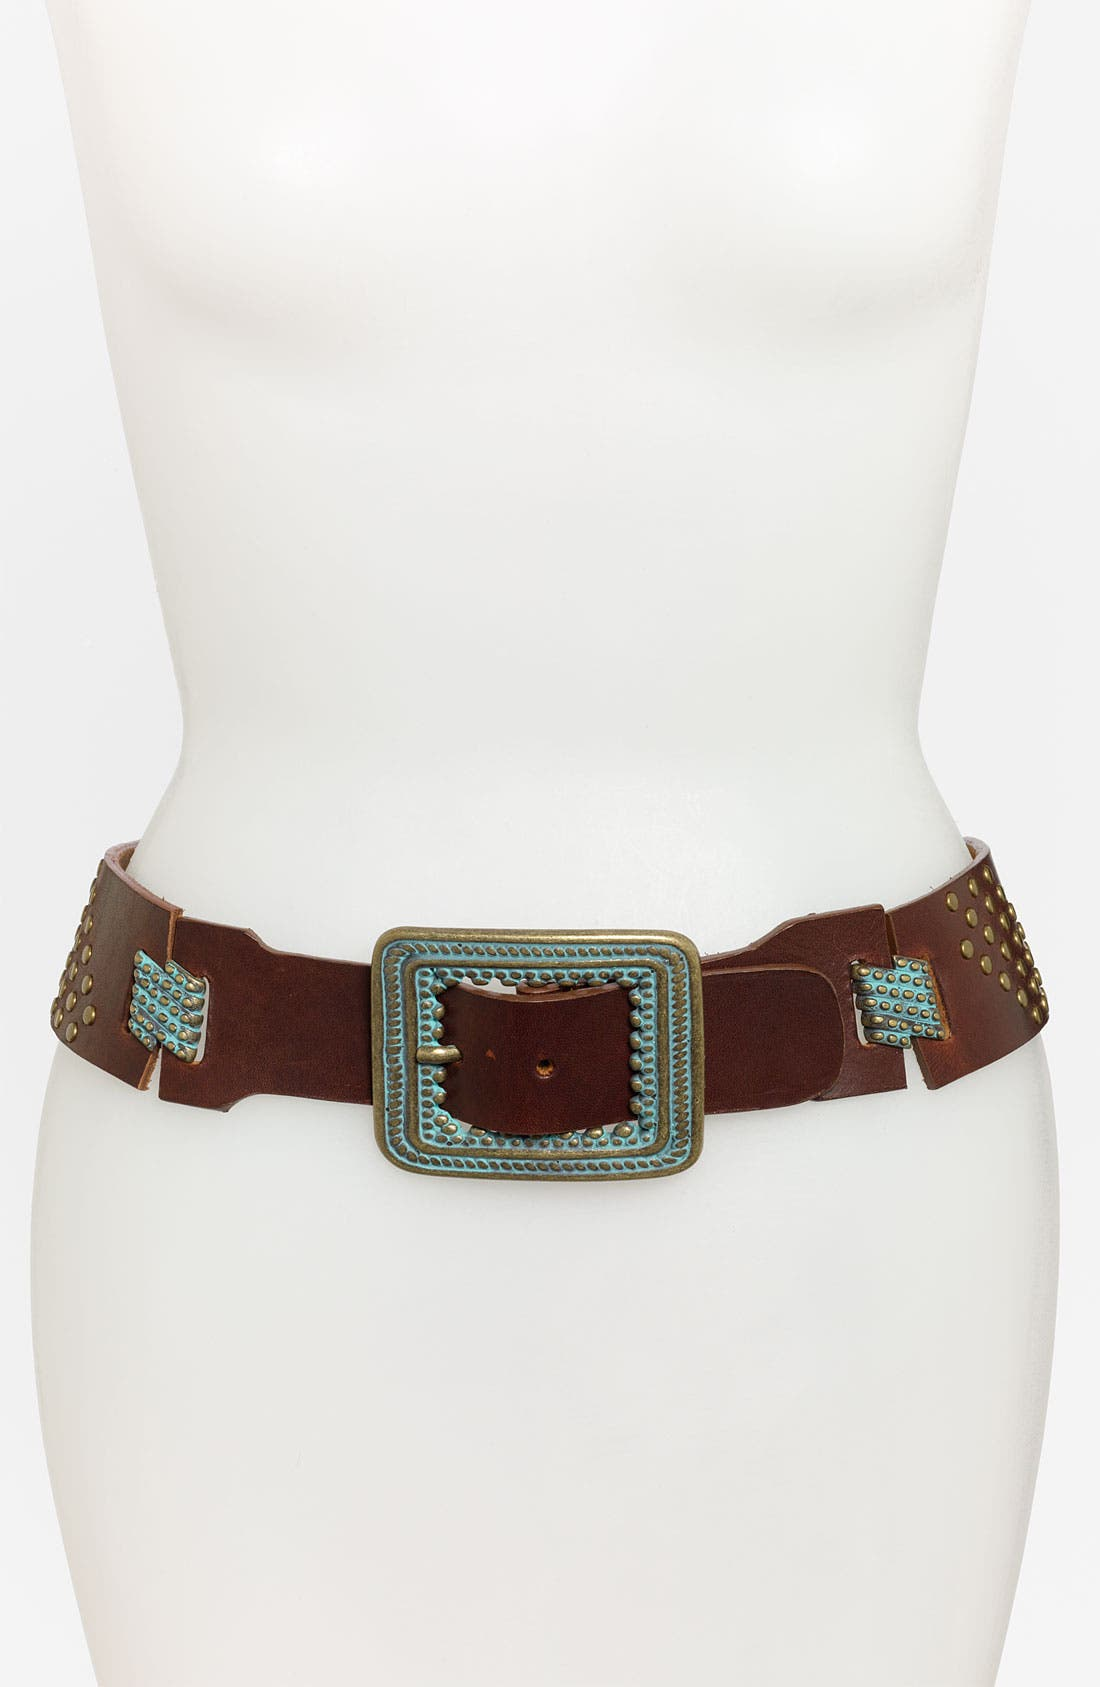 Main Image - Leatherock Leather Belt